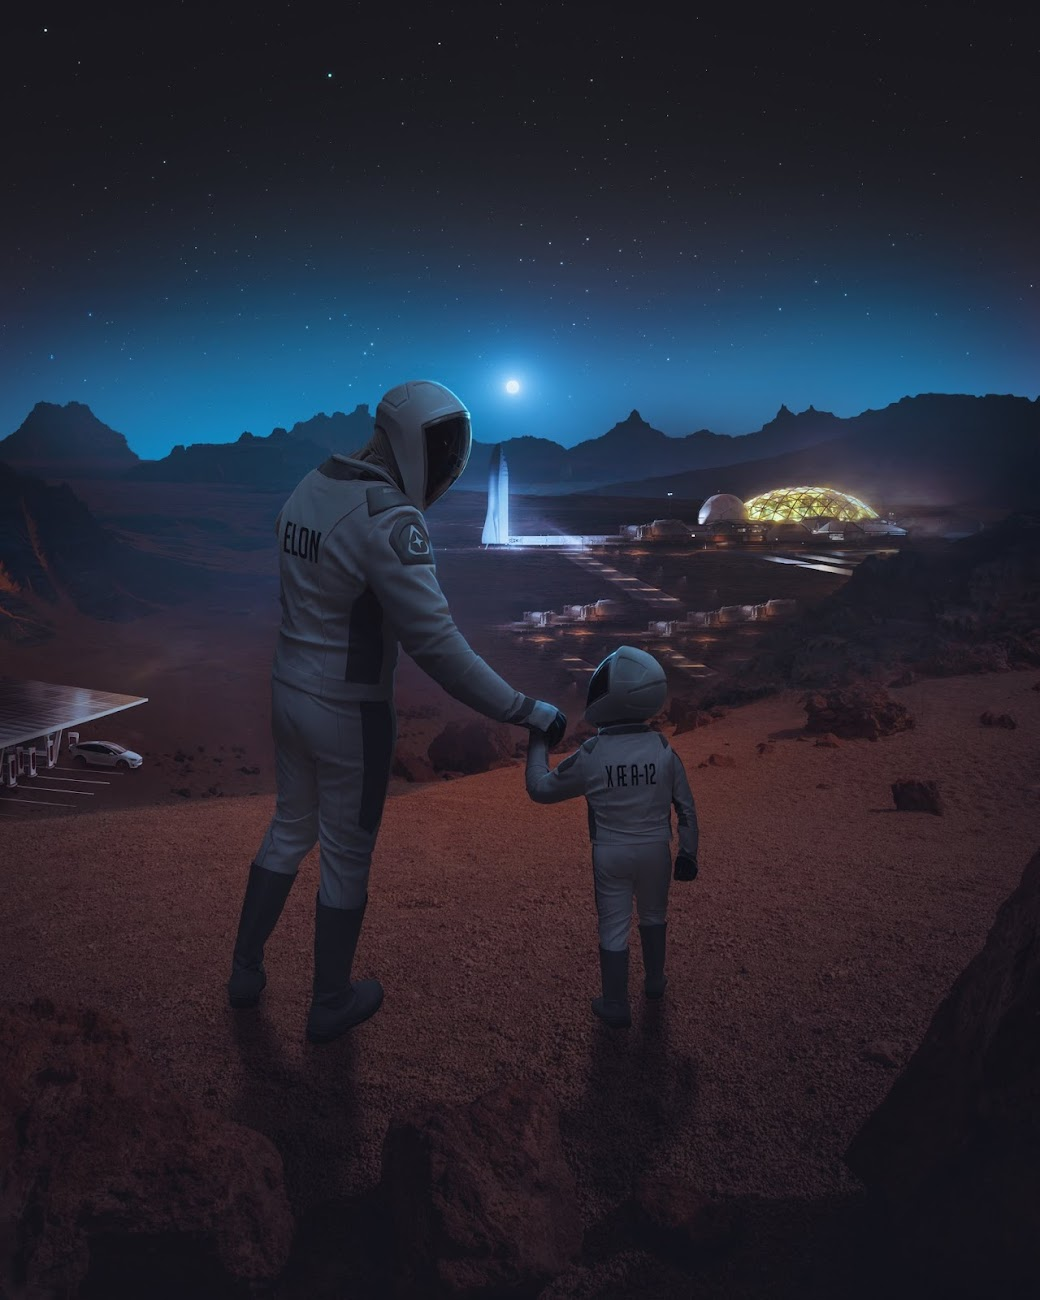 Elon Musk with his youngest son X Æ A-12 at Mars Base Alpha by Eashan Misra